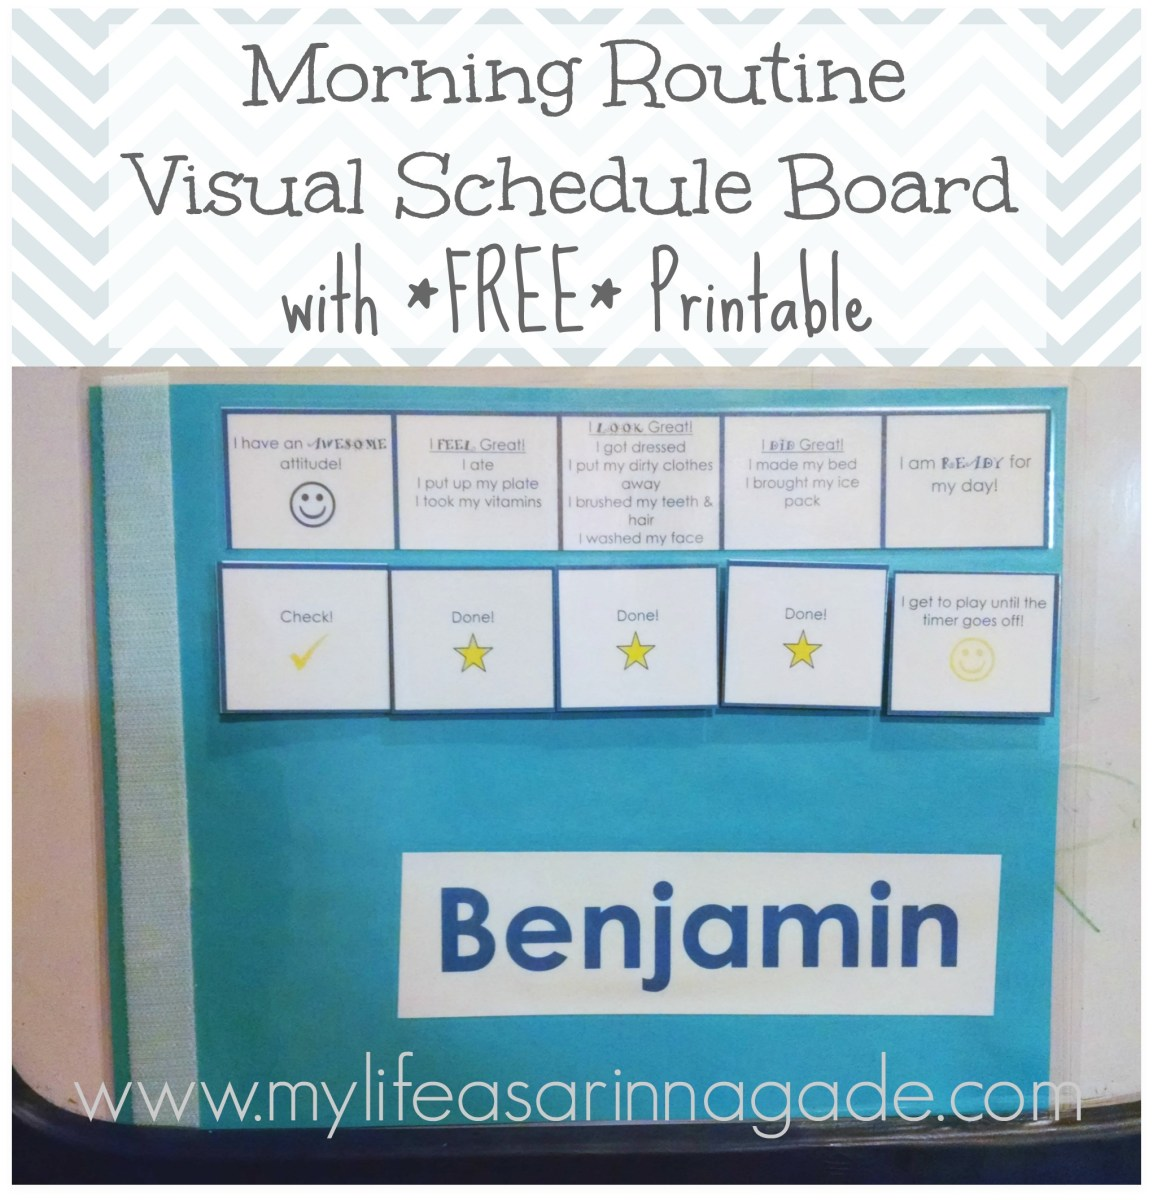 Morning Routine Visual Schedule Board with *FREE* Printable